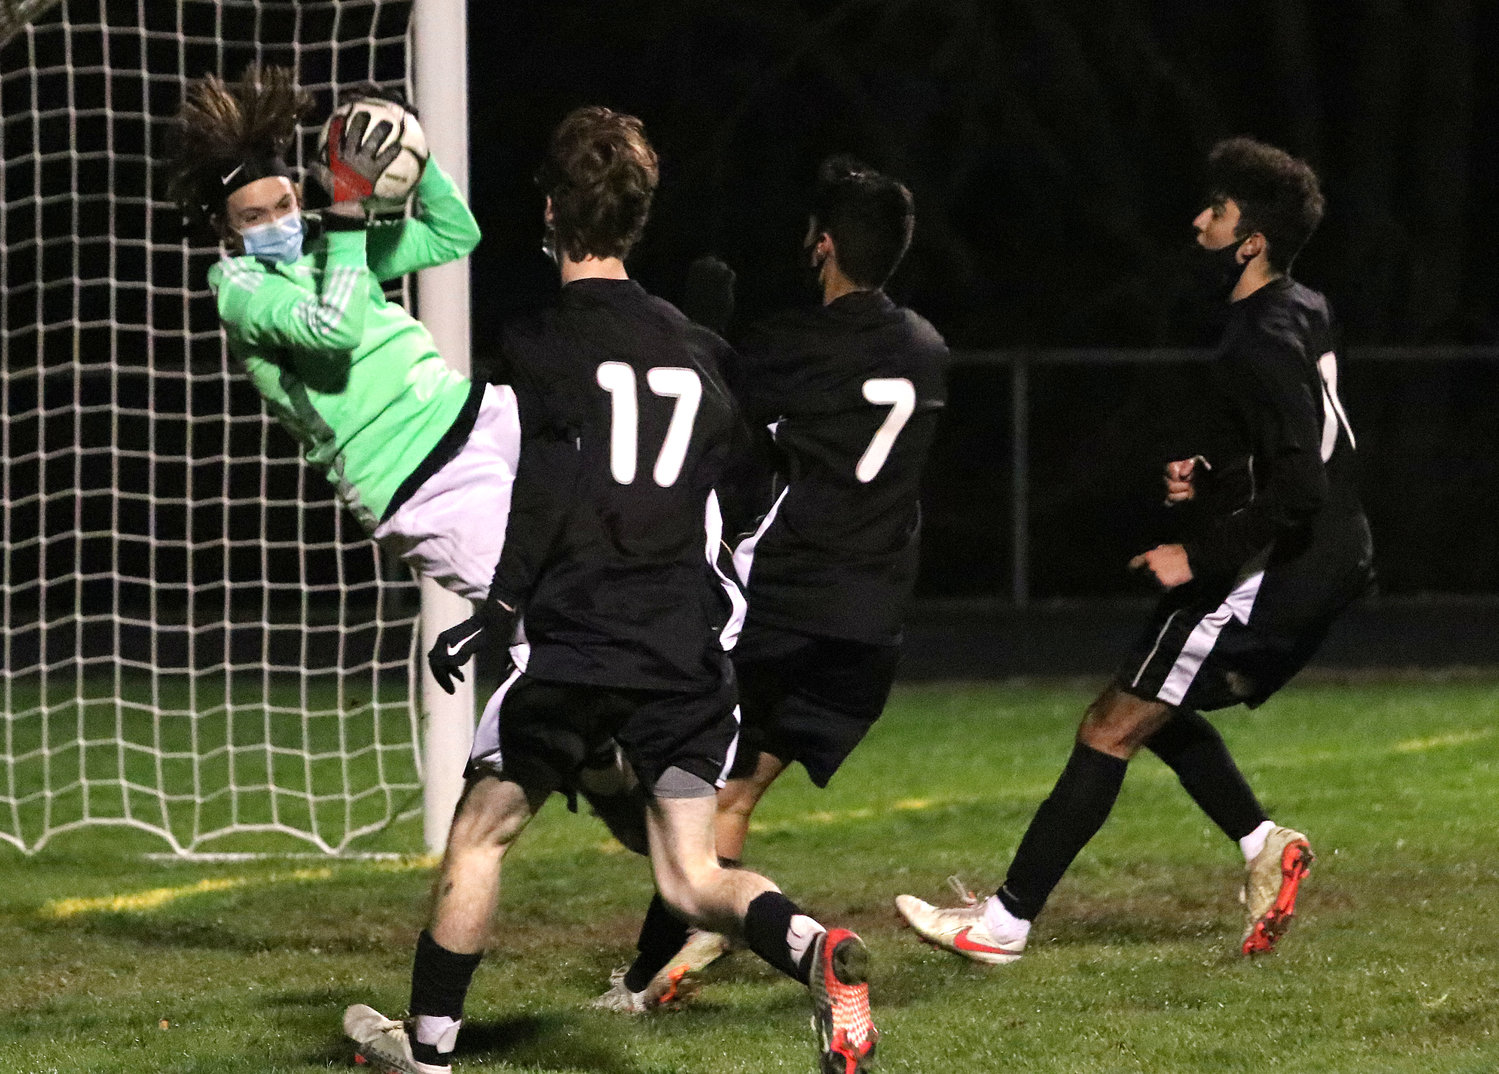 Ryan also had a big save in the wee minutes of regulation for Pilgrim. Tamulaites lofted a direct kick from 25 yards out as Brol, Jayden Terra and Noah Furtado charged the Patriots goal.